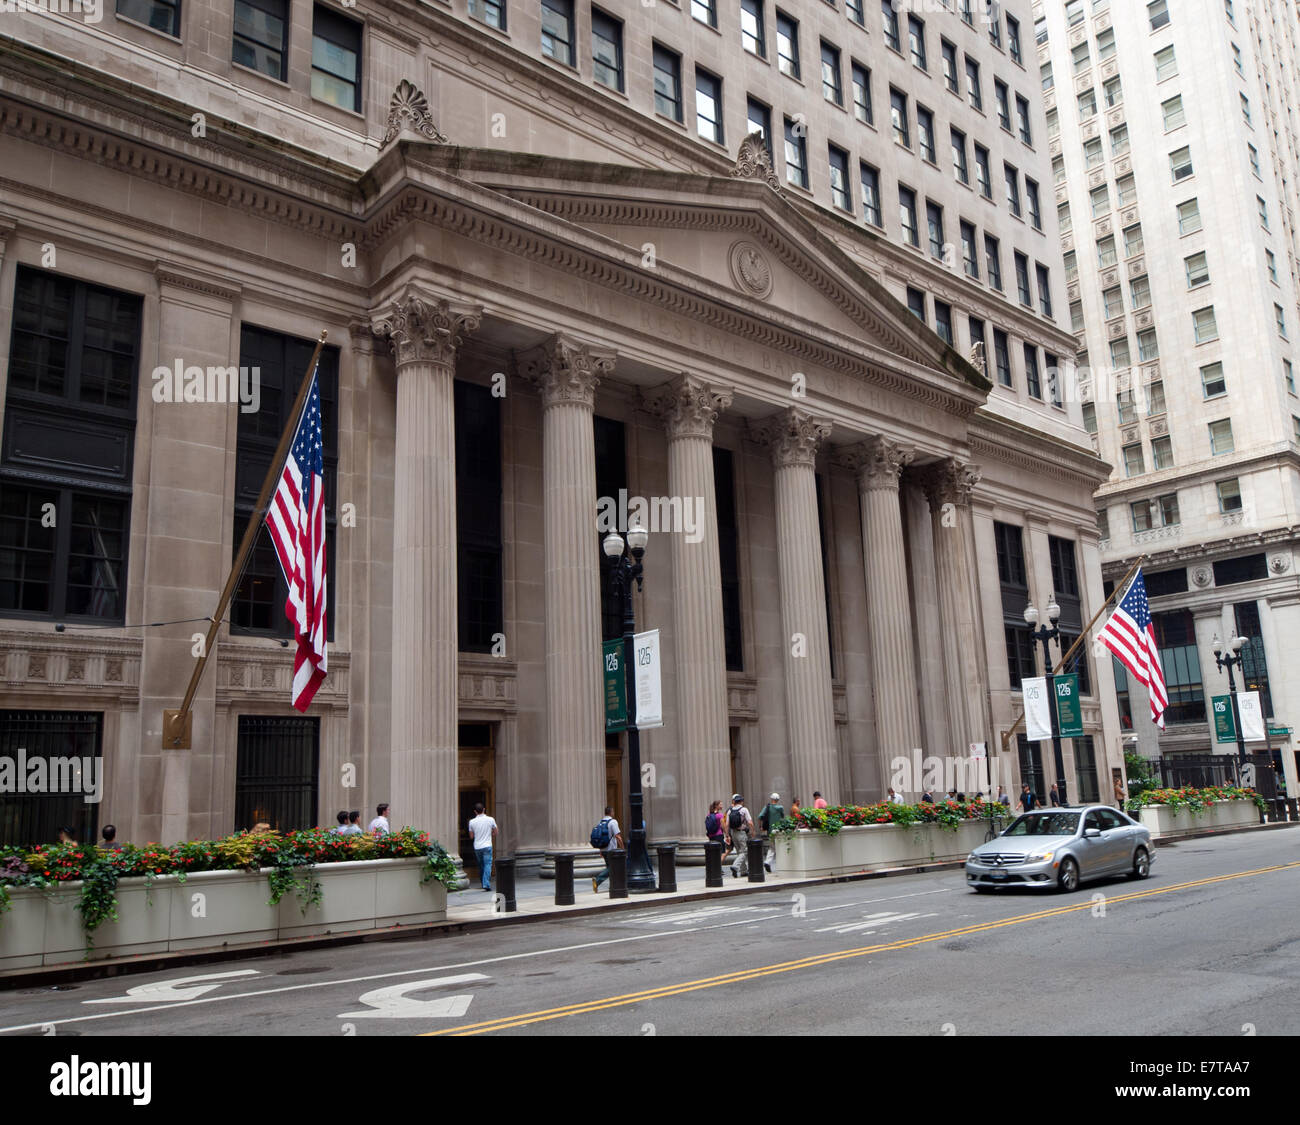 Image result for chicago federal reserve bank